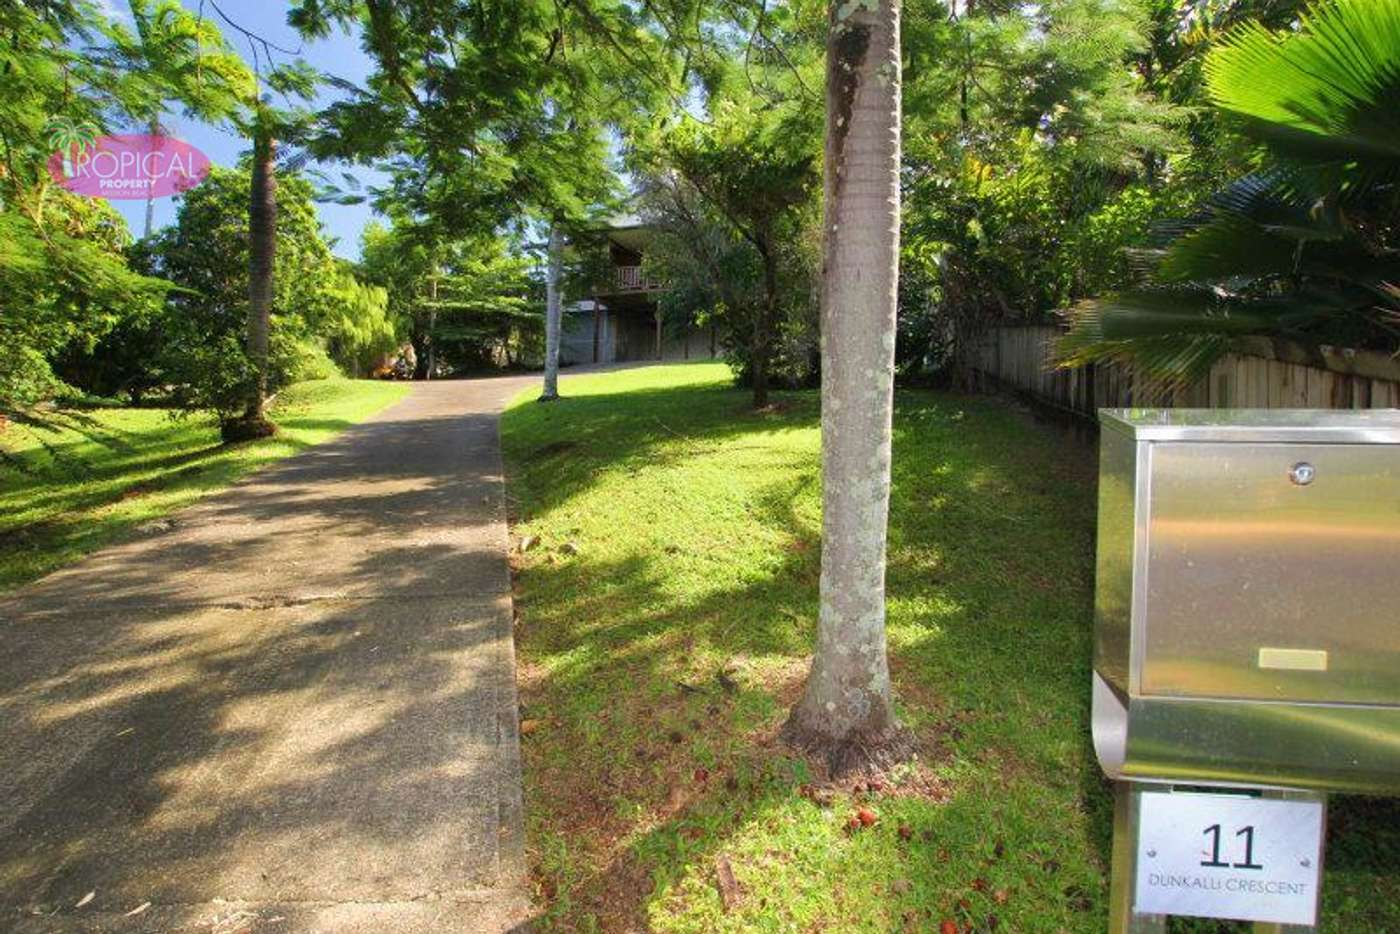 Main view of Homely house listing, 11 Dunkalli Crescent, Wongaling Beach QLD 4852